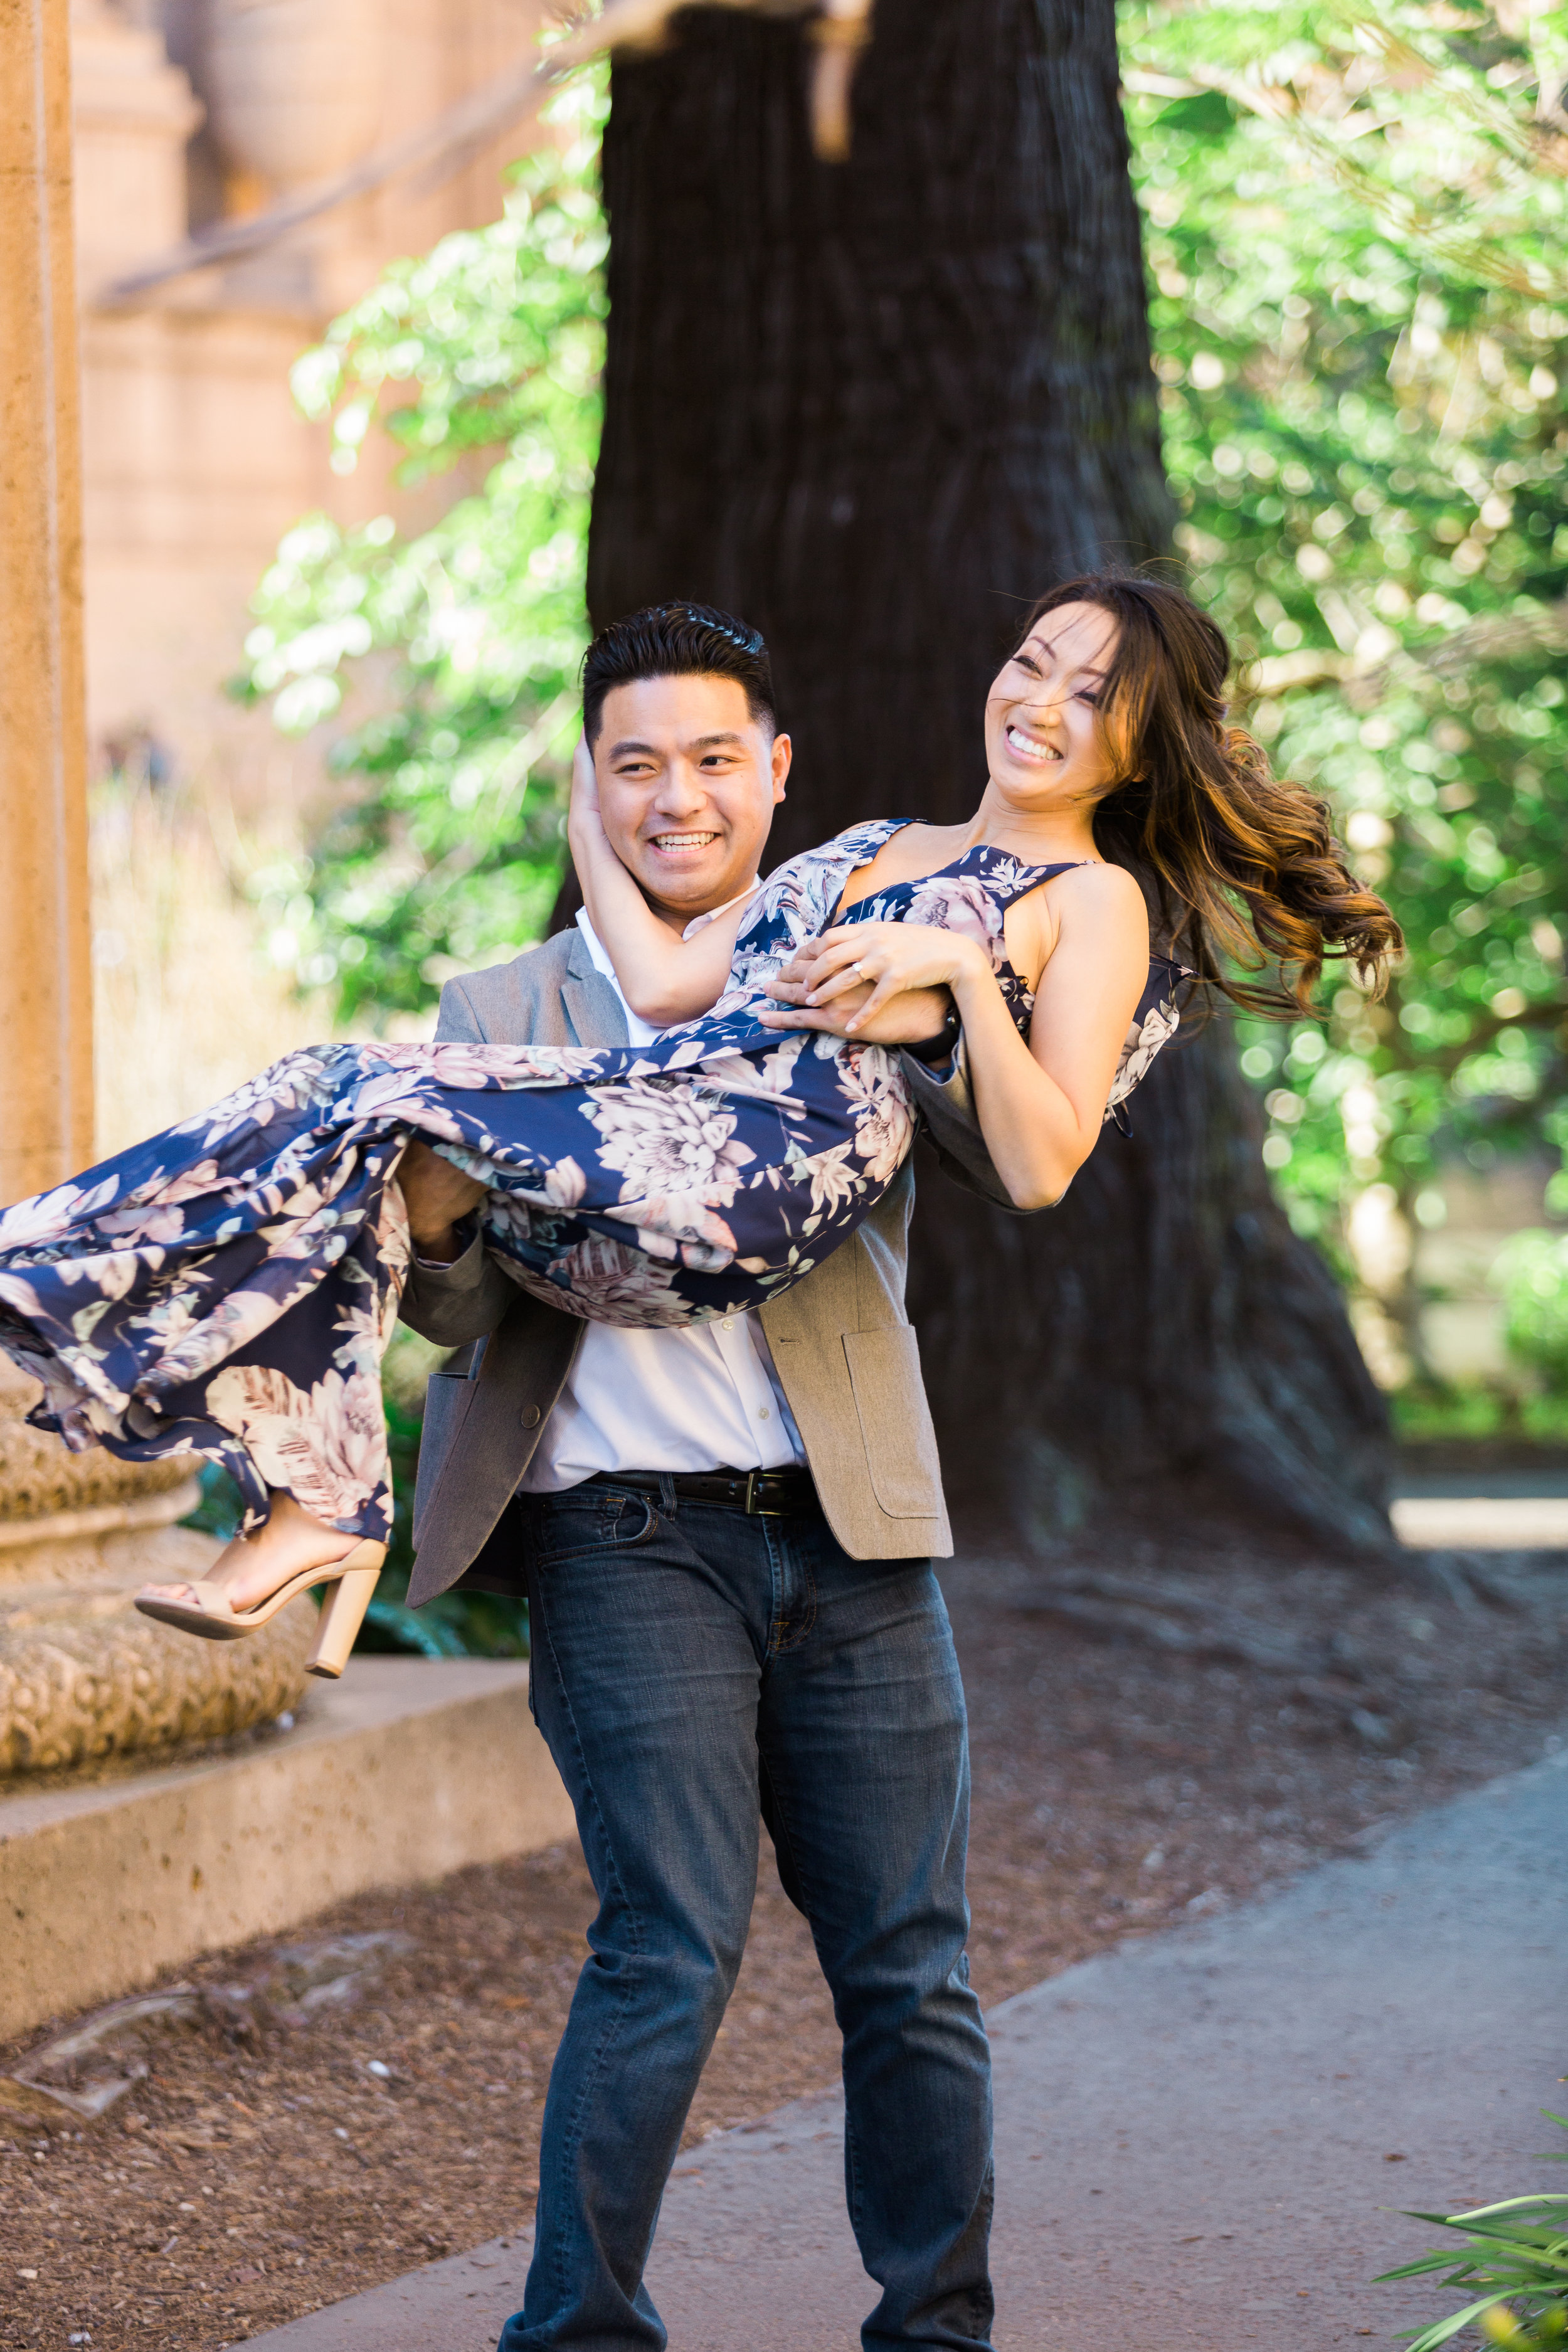 San-Francisco-Engagement-Session-Tara-Nichole-Photo-17.jpg